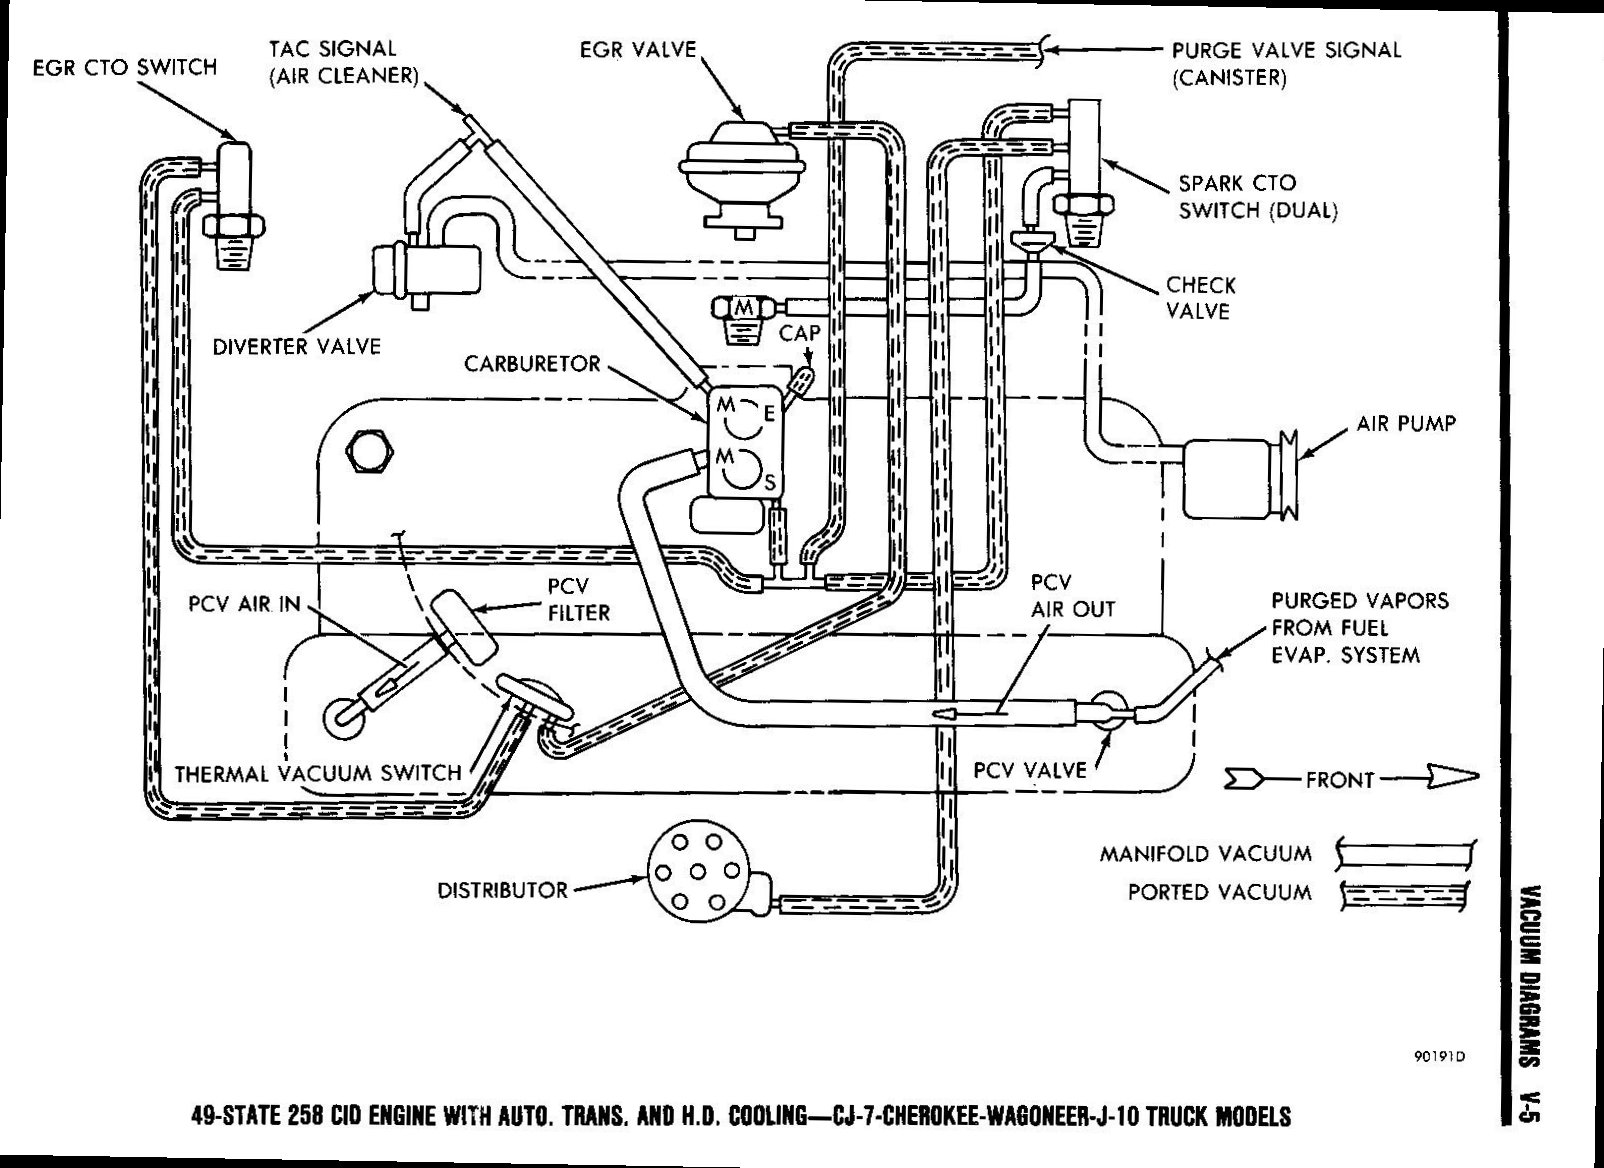 Cj5 258 Vacuum Diagram 544546 additionally Fox Shocks together with Belt 1 further Vacuumhoses additionally R2348. on tj steering